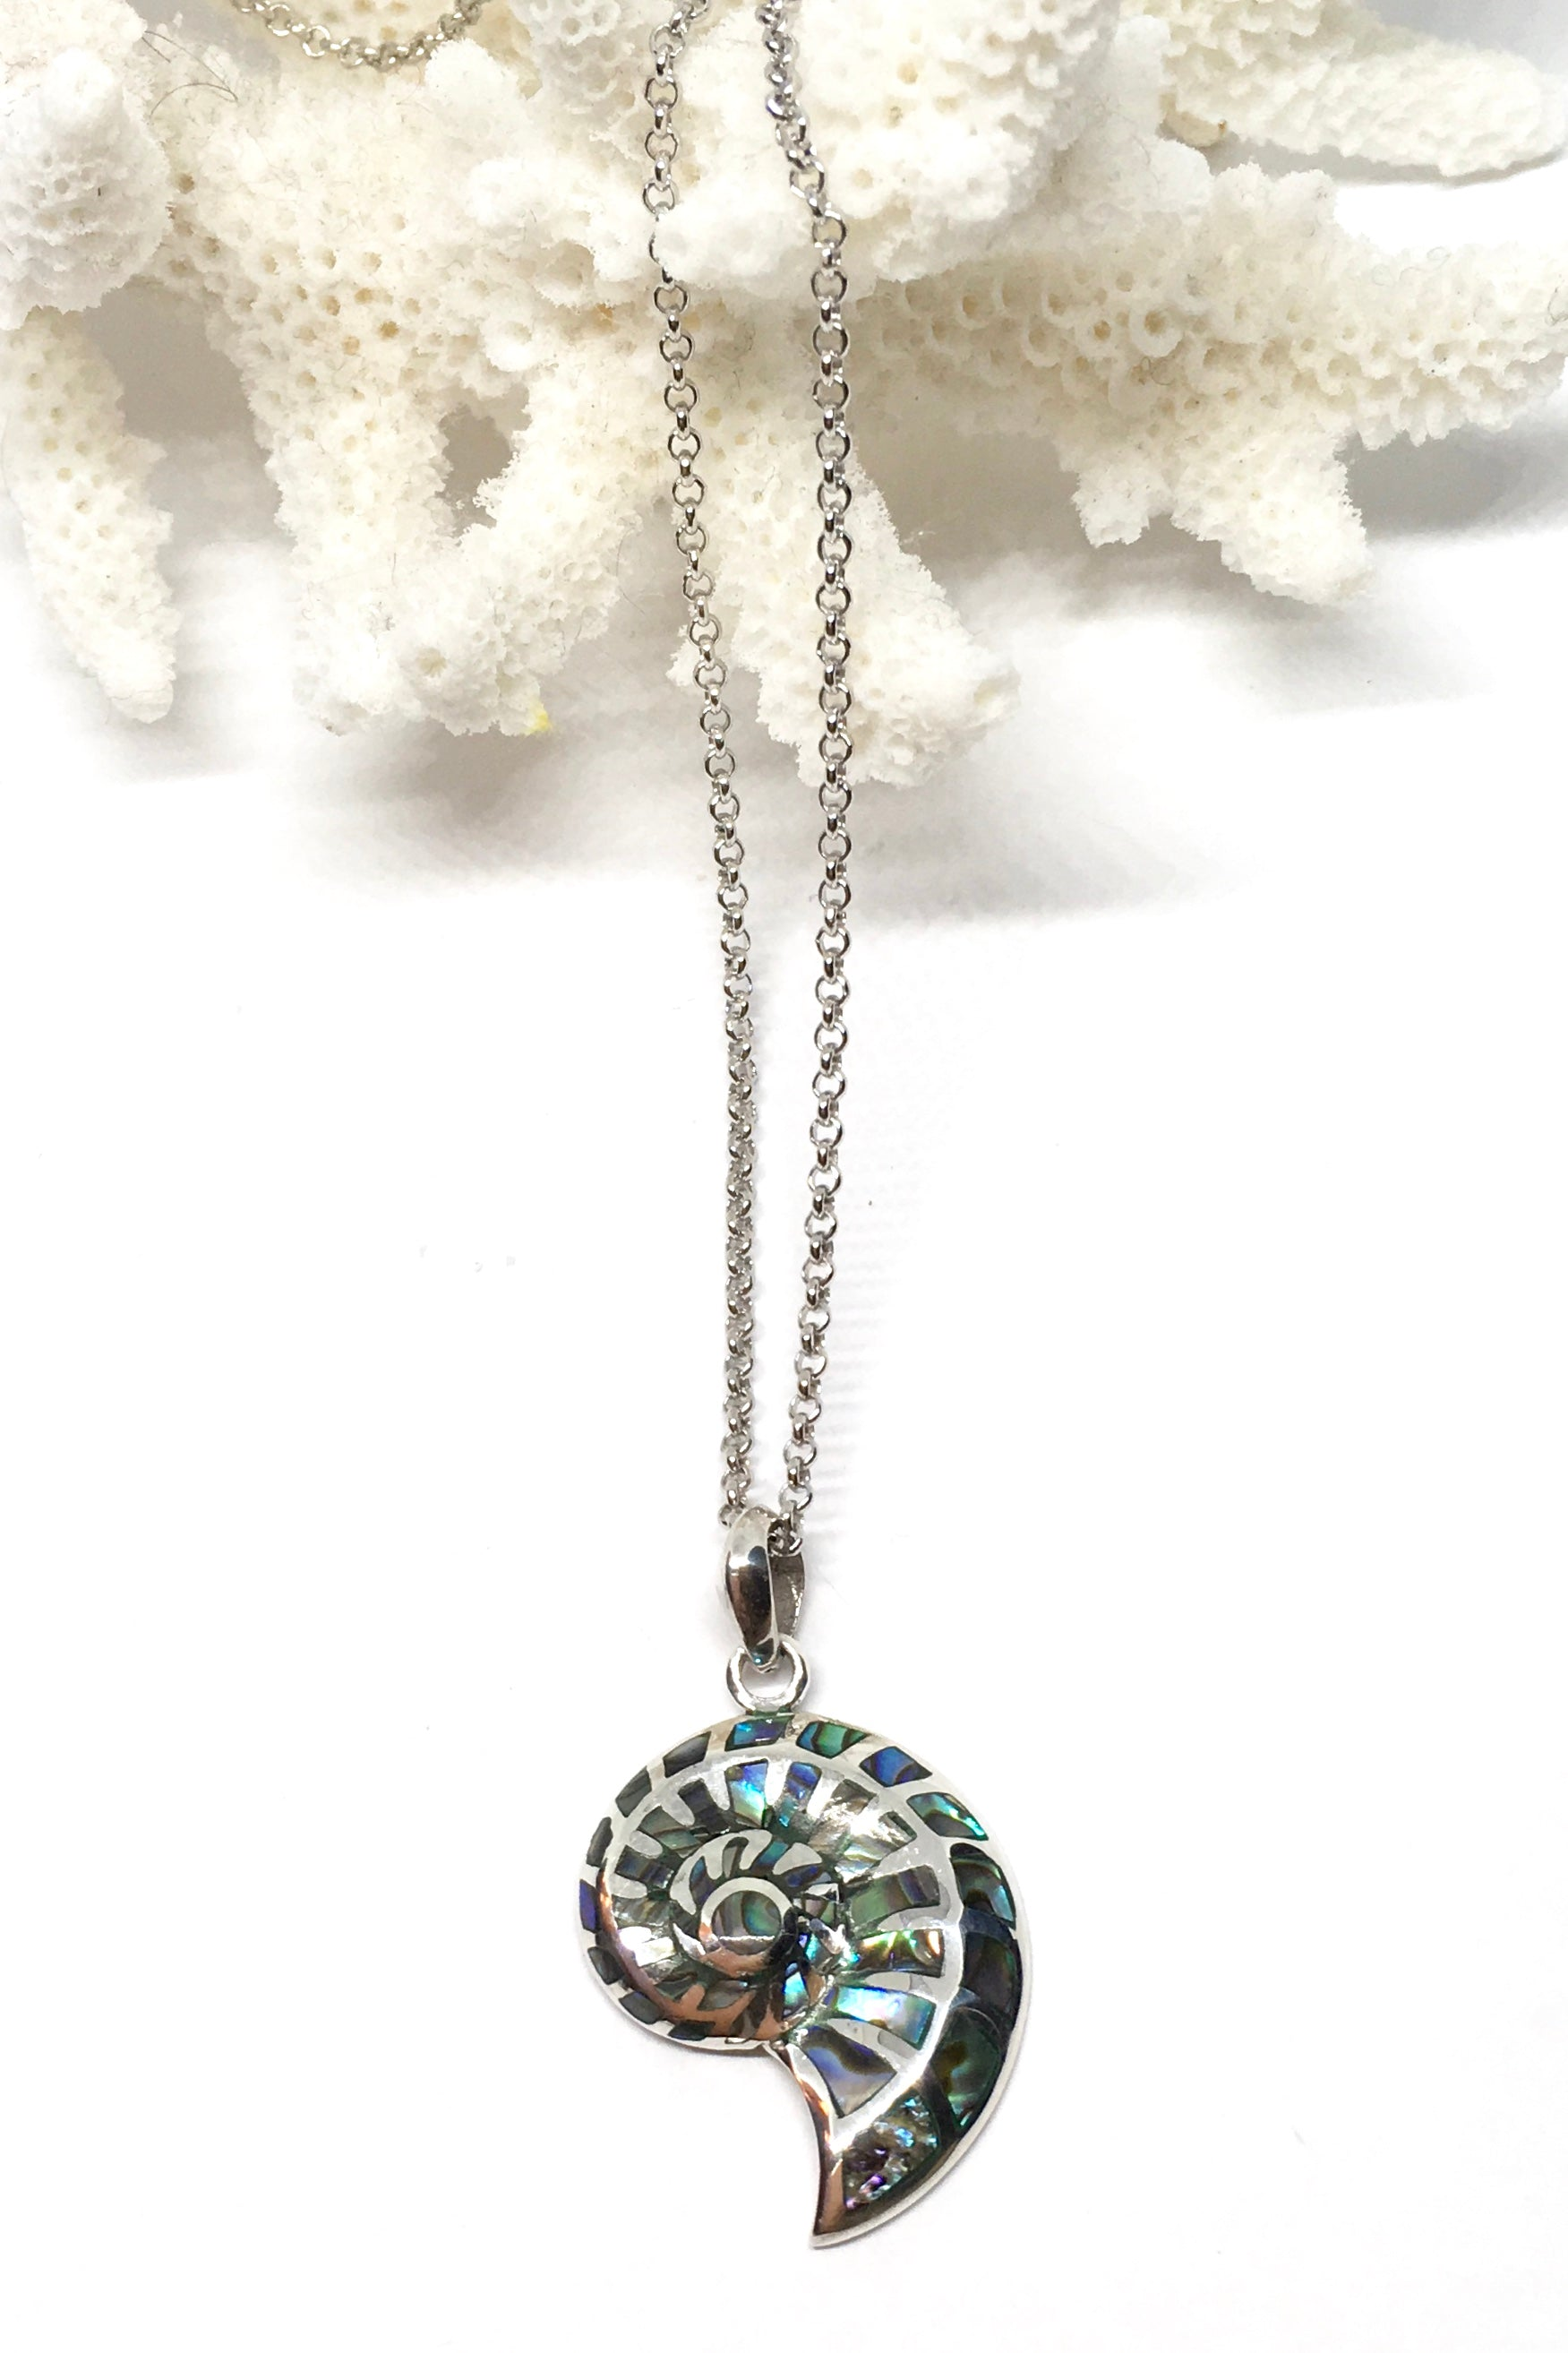 Necklace Cay Nautilus shell. A divine swirl of iridescent Paua shell with 925 solid silver detailing